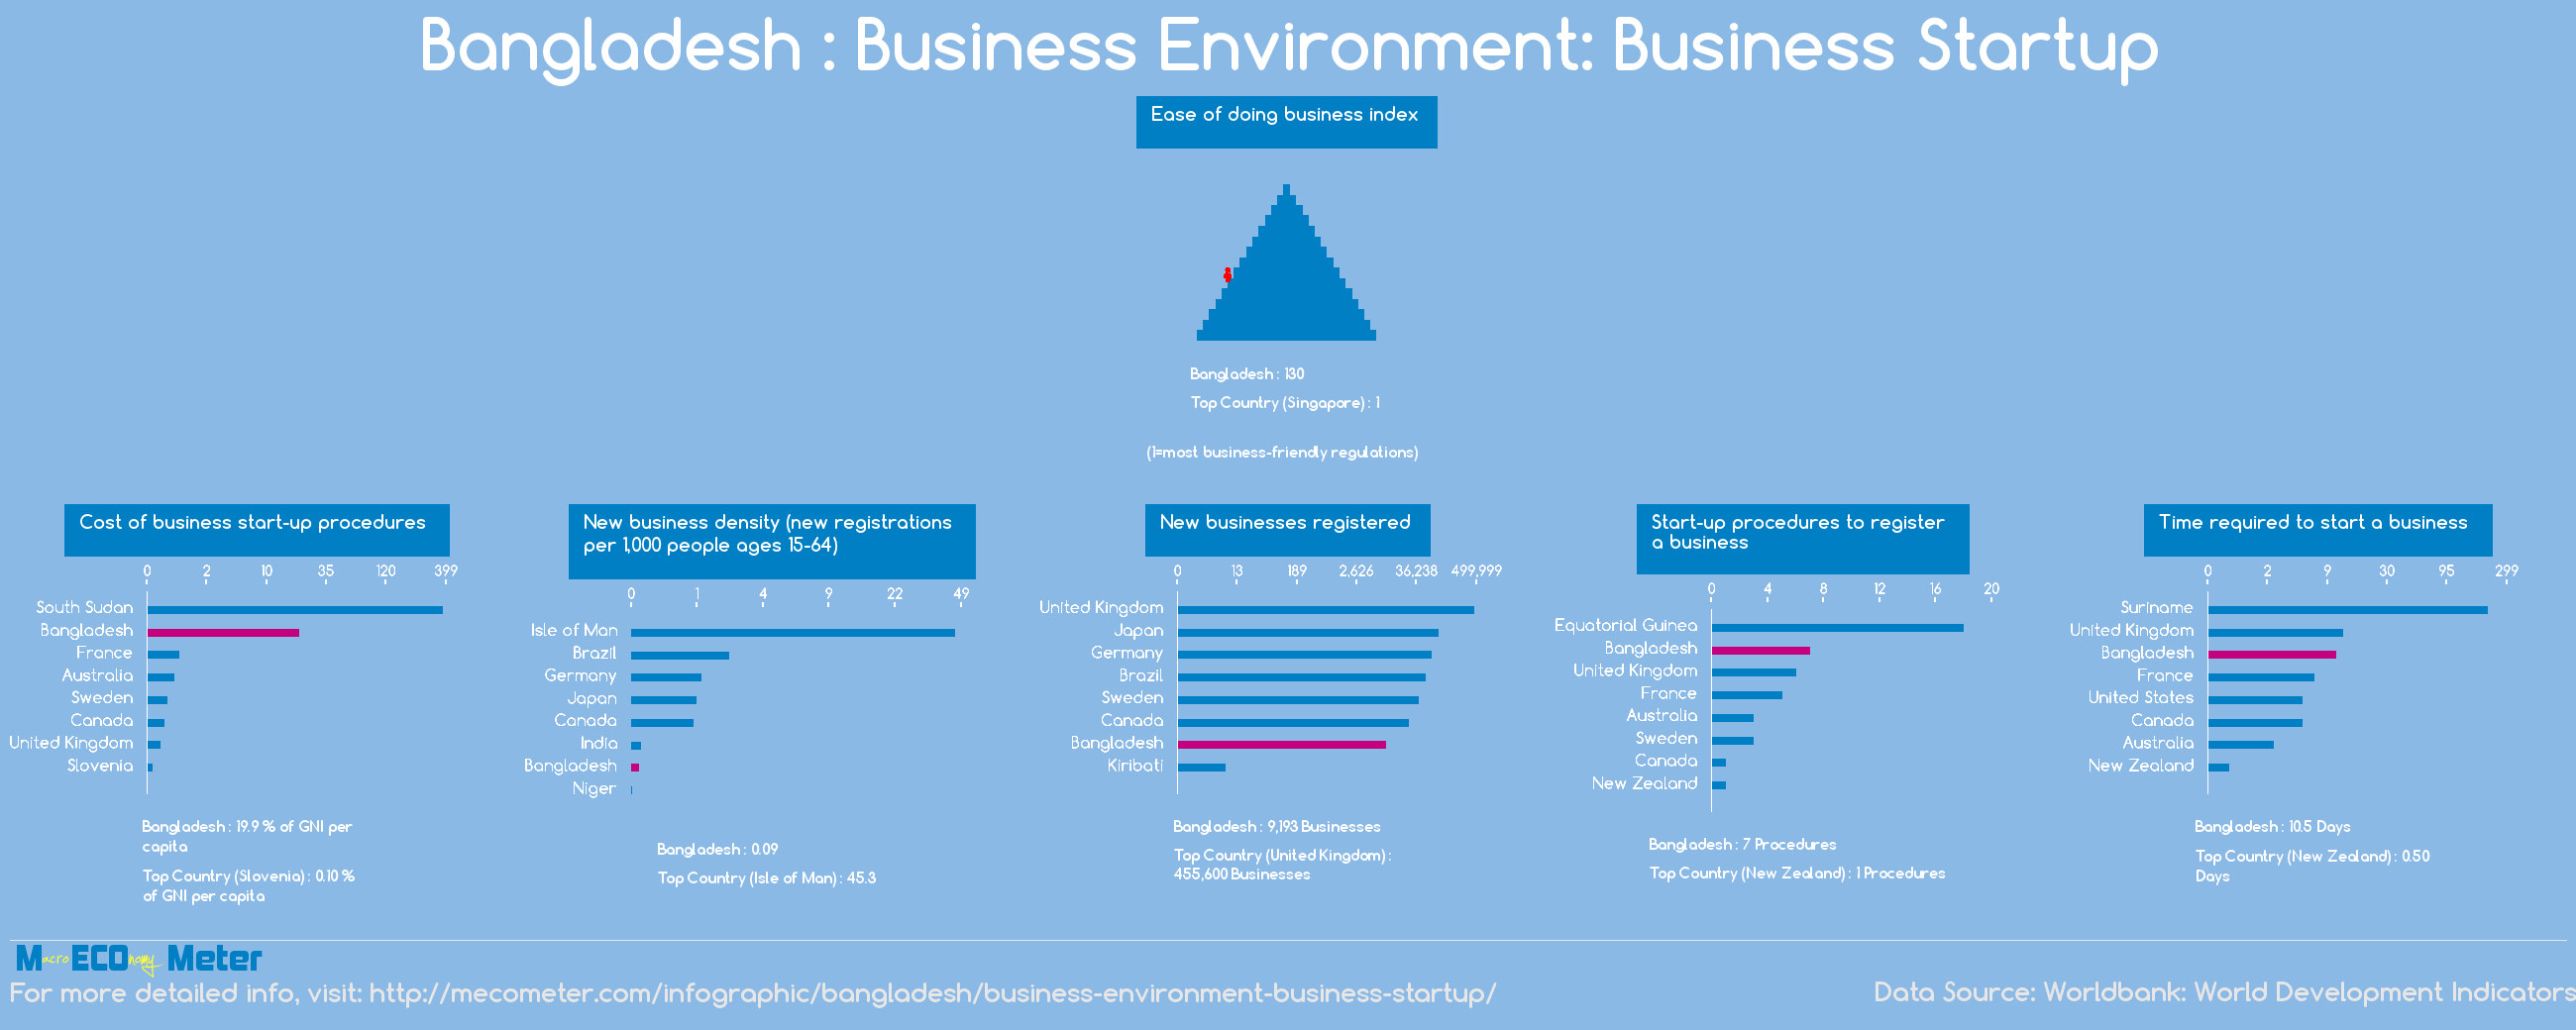 Bangladesh : Business Environment: Business Startup